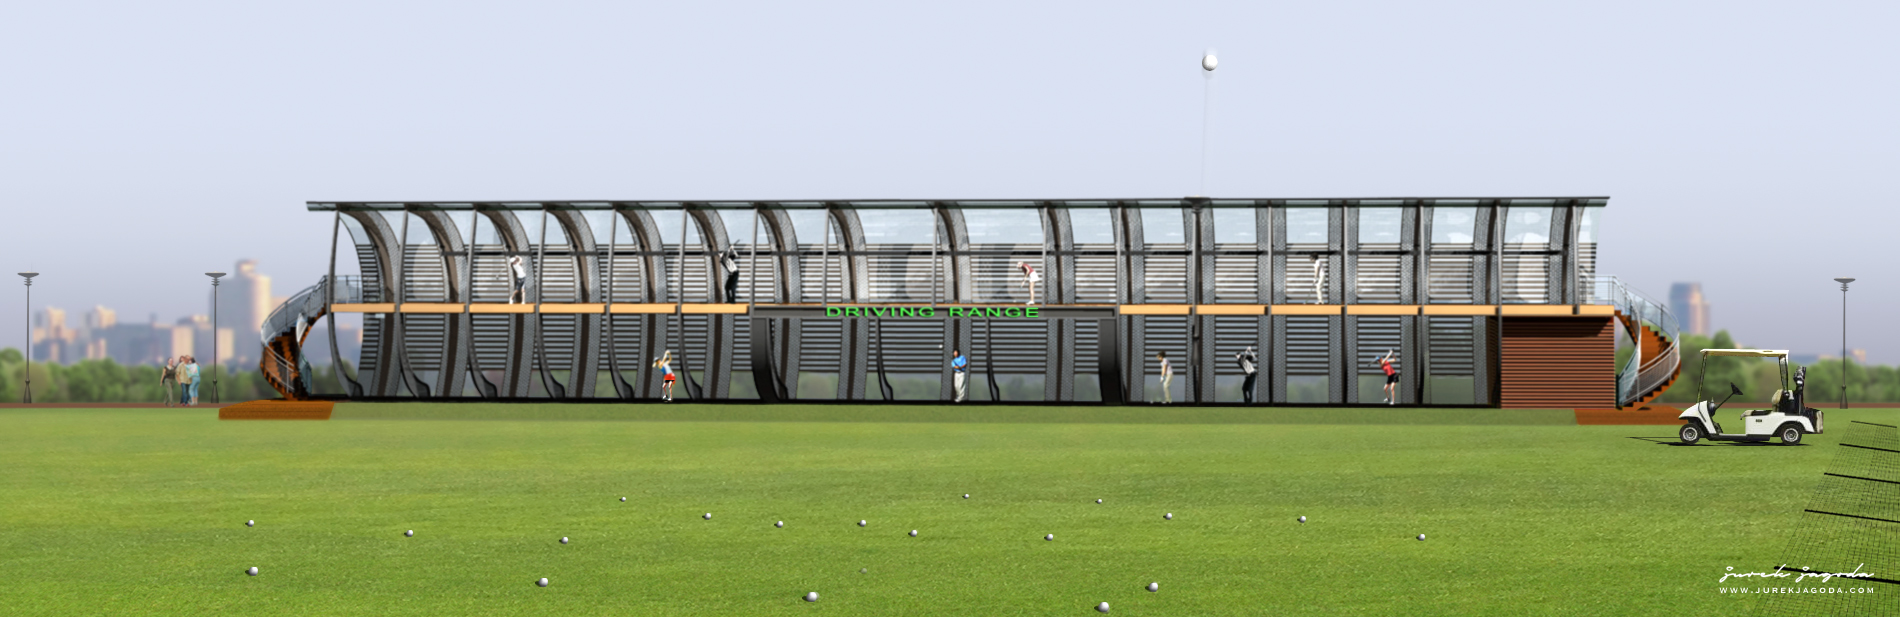 Two Storey Driving Range. Night view.